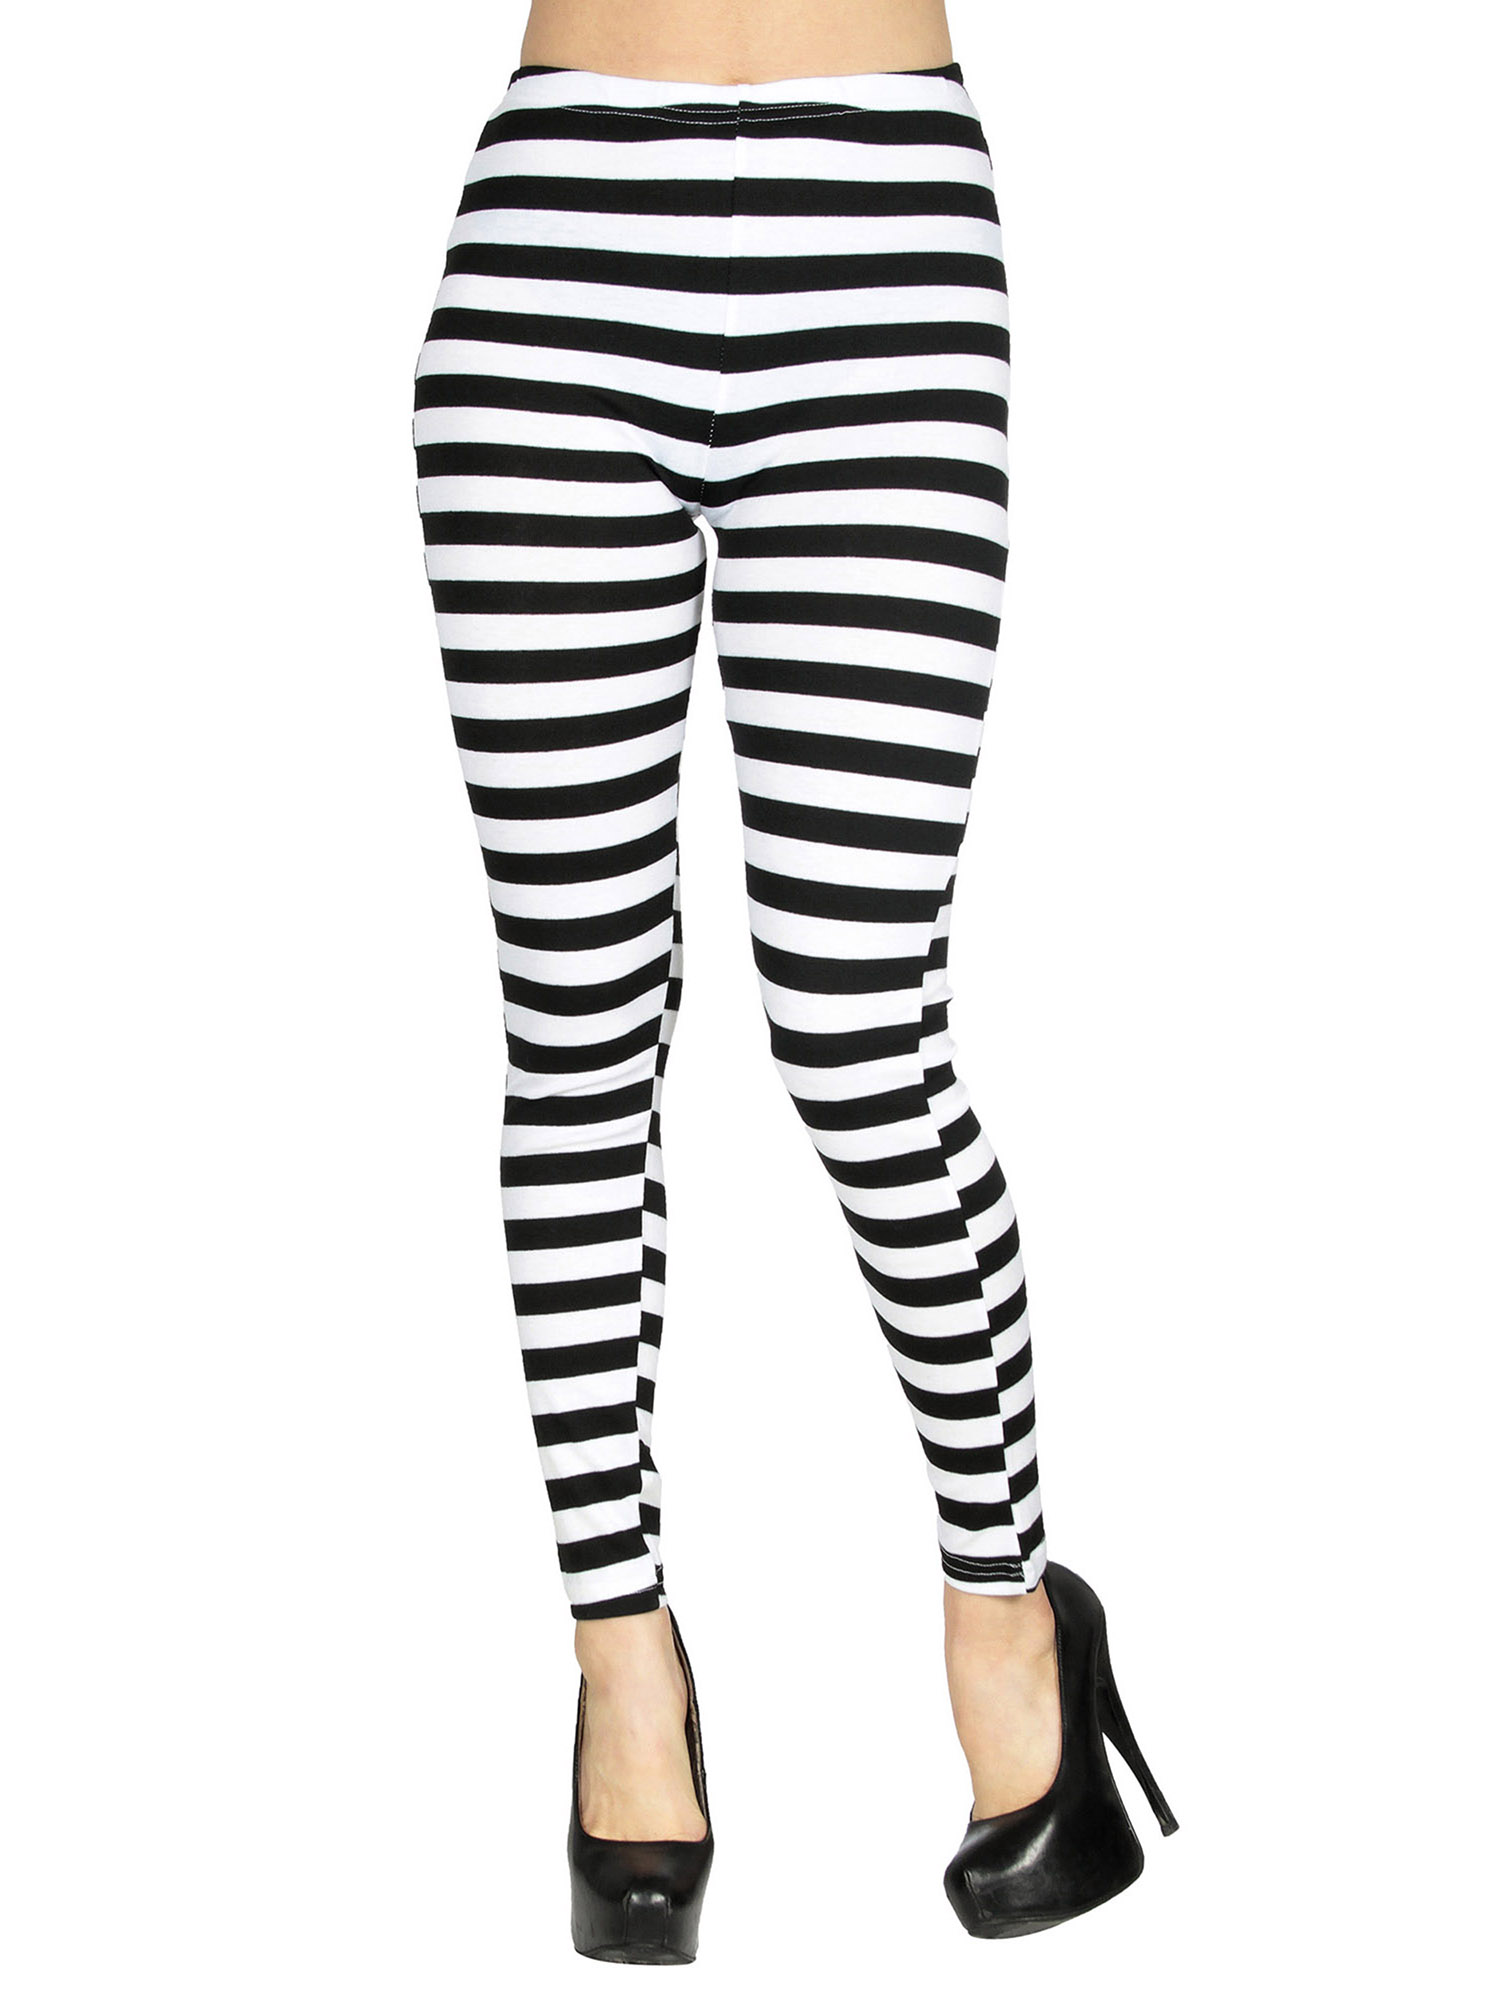 BASILICA - Women's Soft Black White Horizontal Striped Leggings w